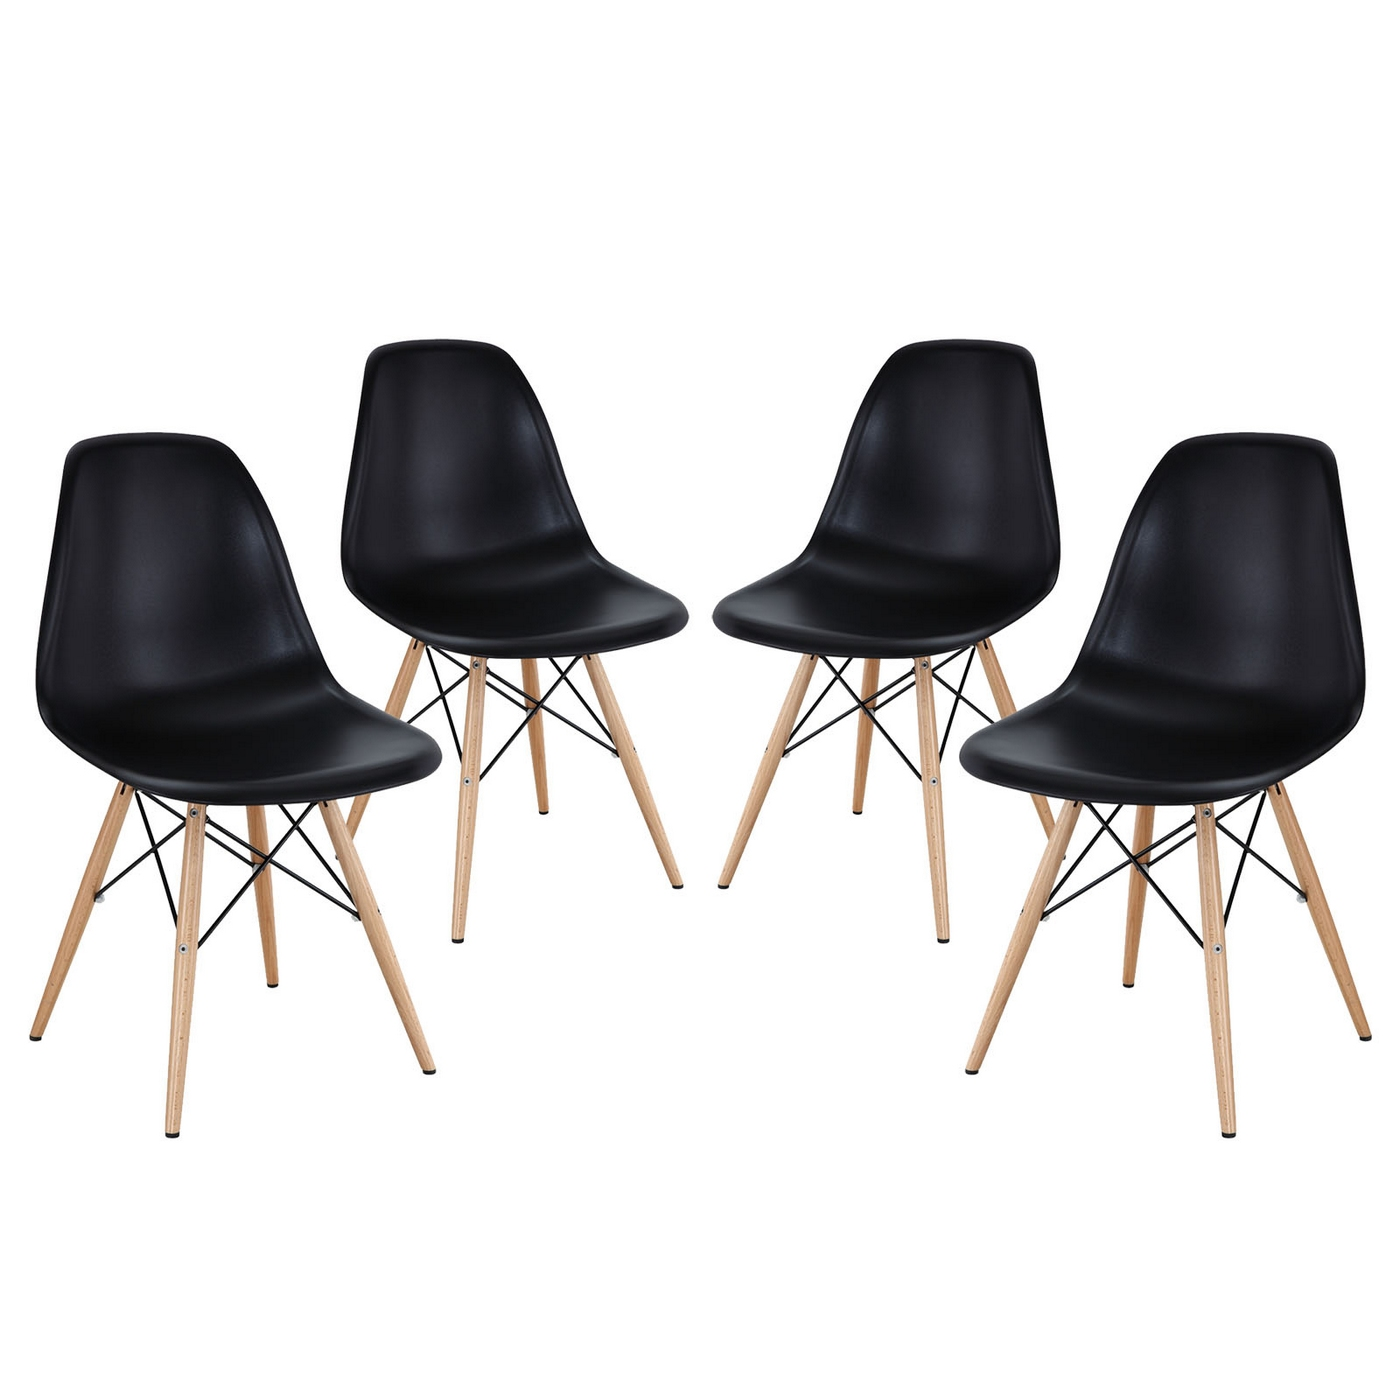 Dining Chairs Black Pyramid Modern Molded Plastic Dining Side Chairs With